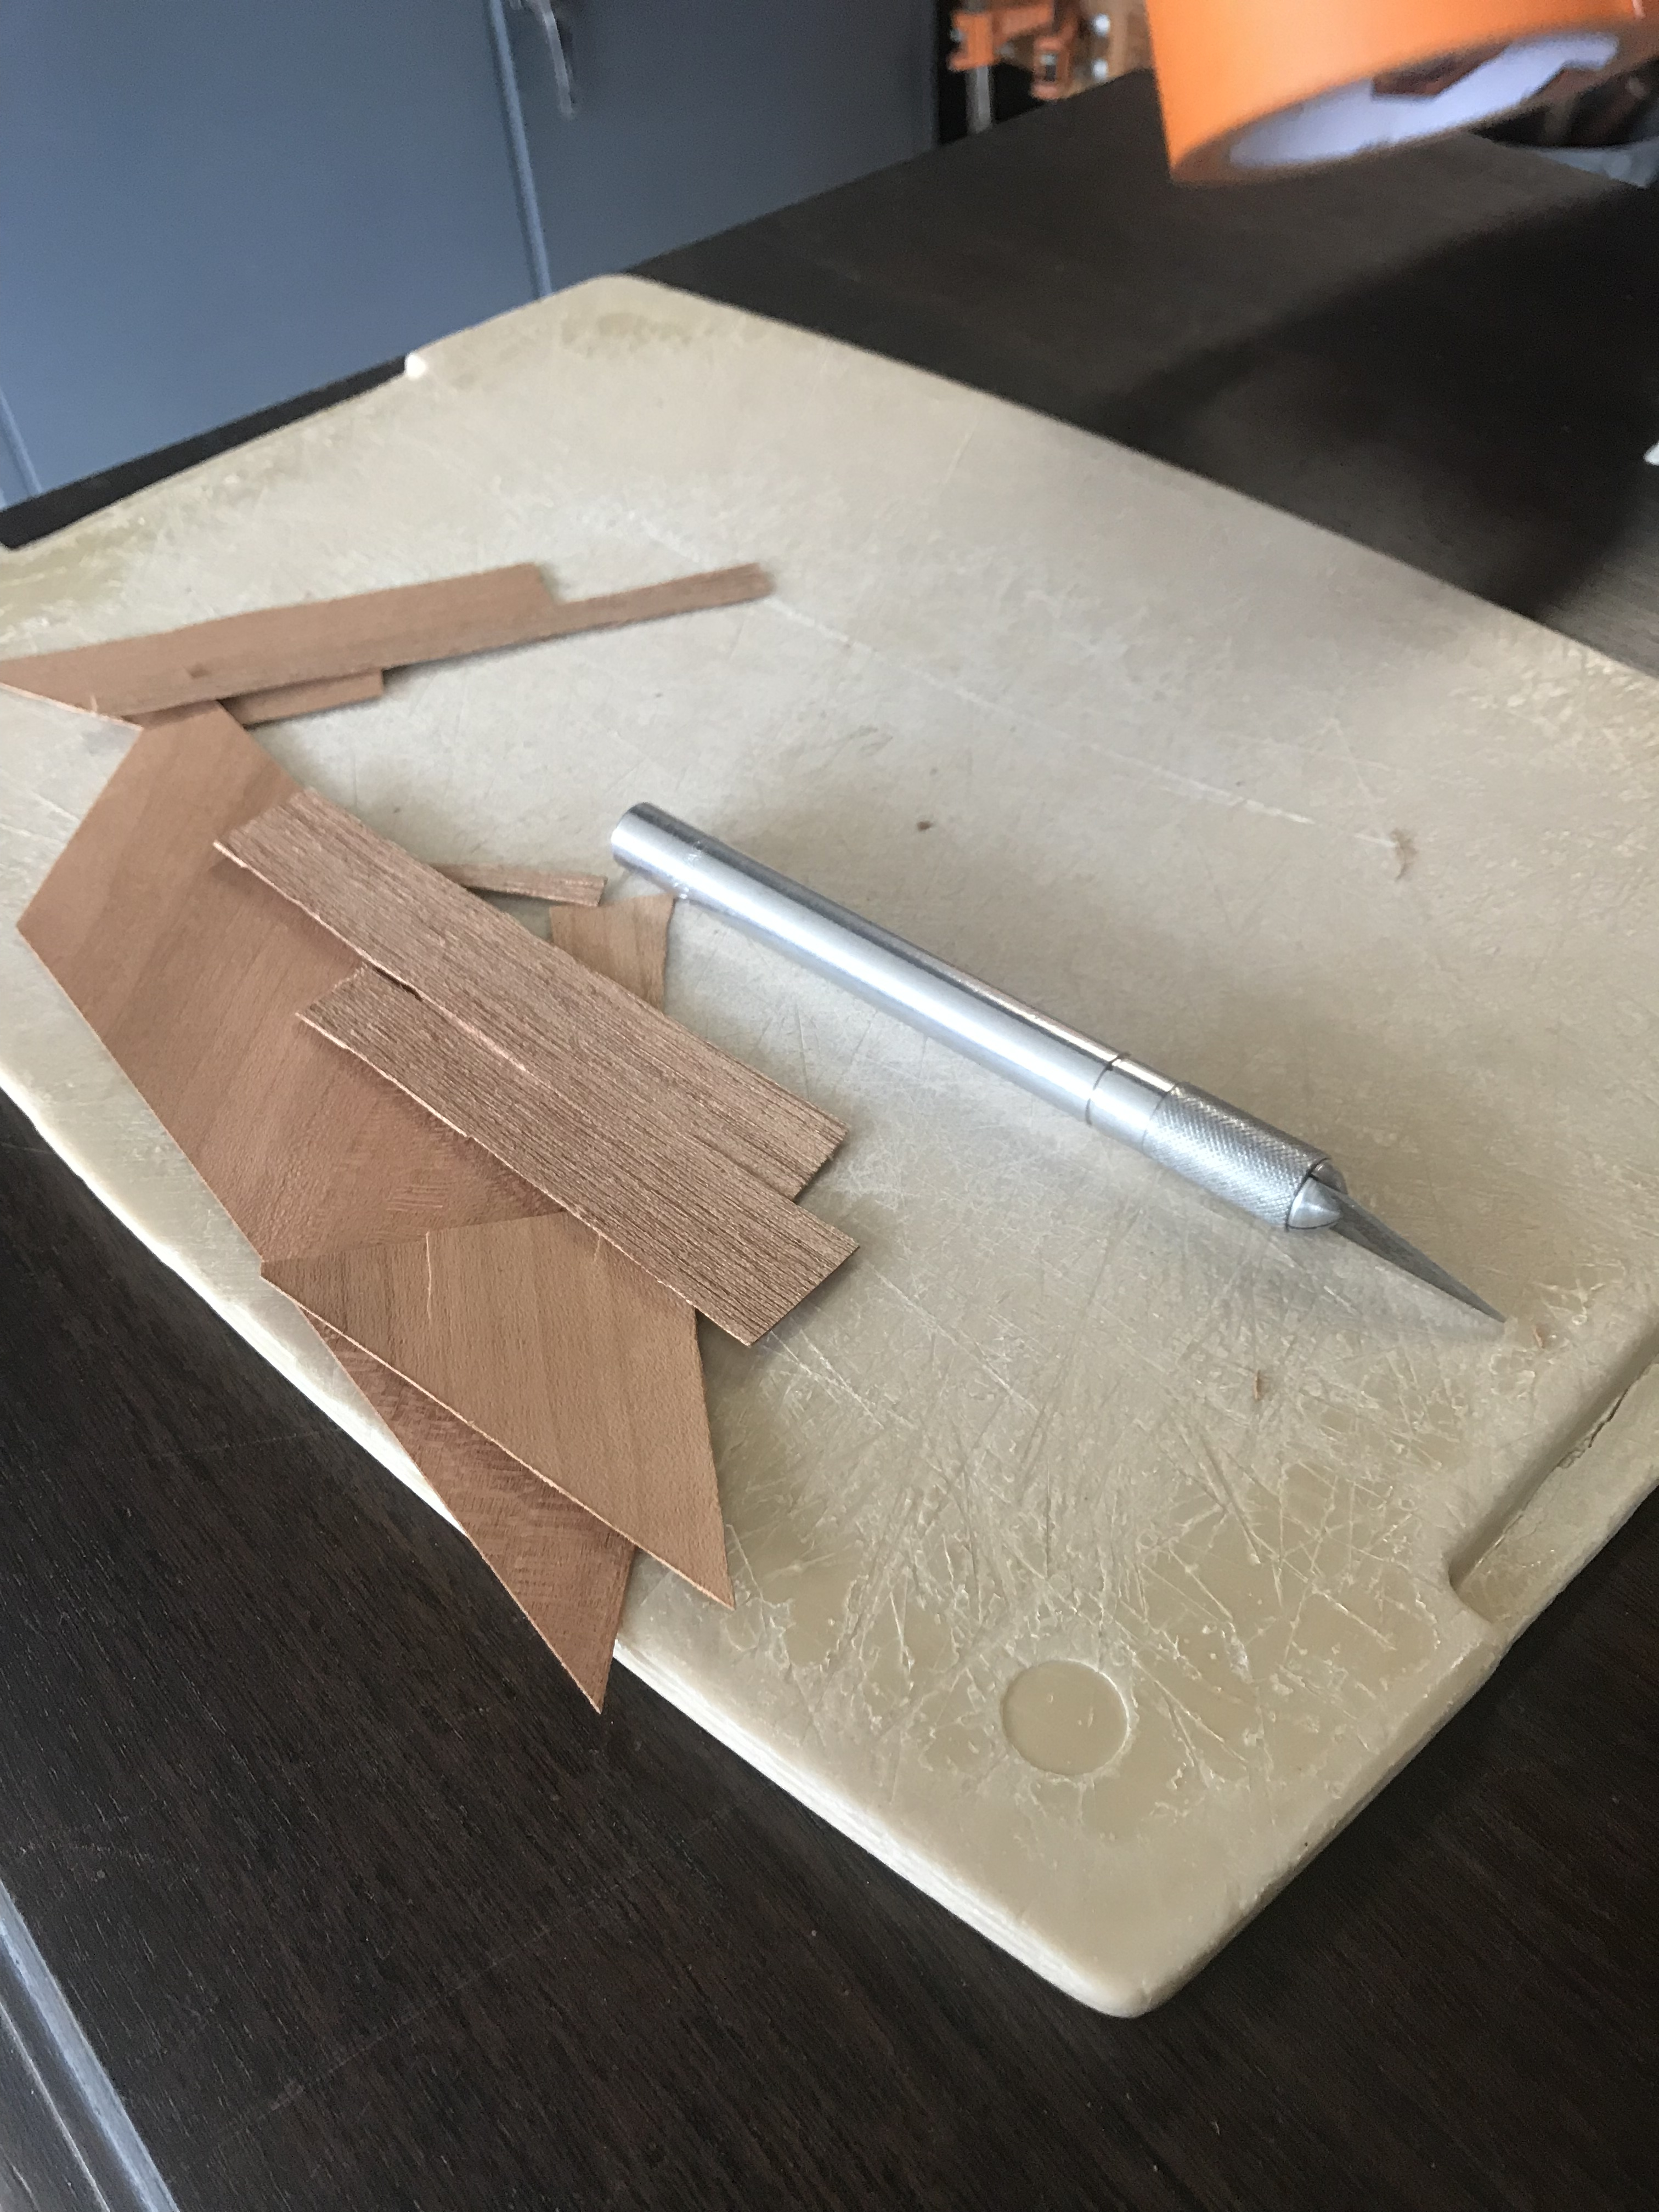 Cutting board and wood veneer pieces